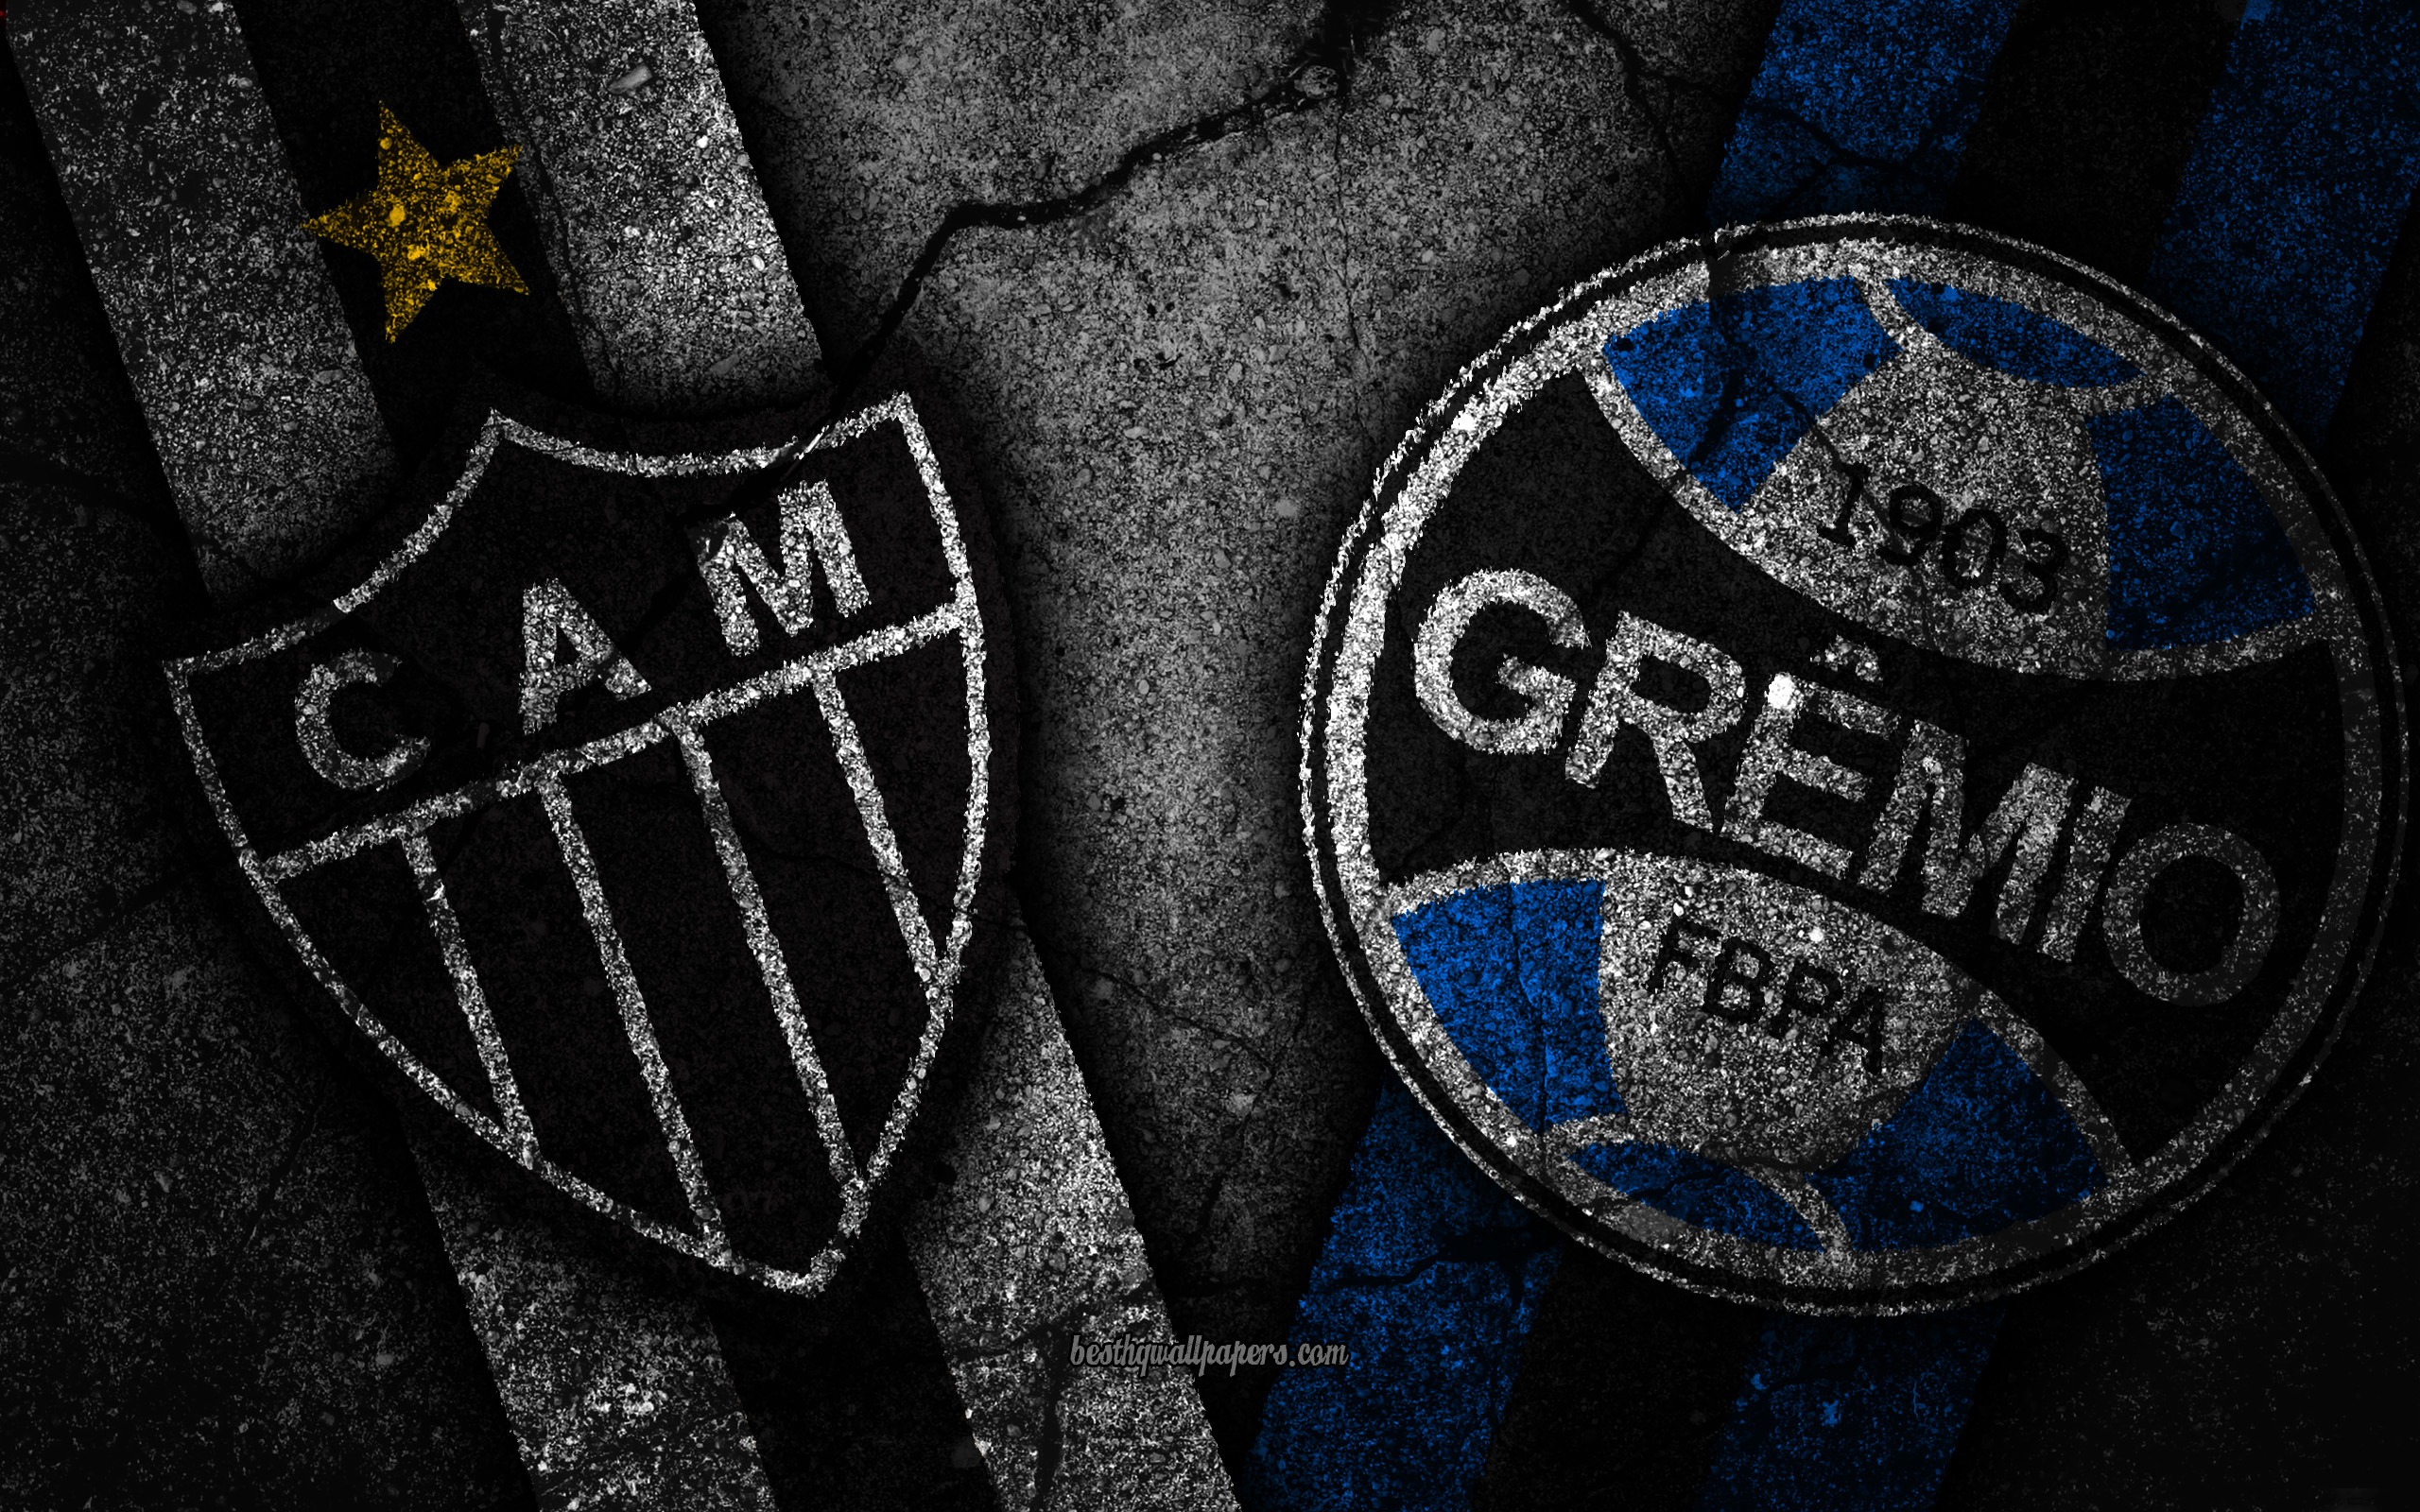 Download wallpapers Atletico Mineiro vs Gremio Round 32 Serie A 2560x1600